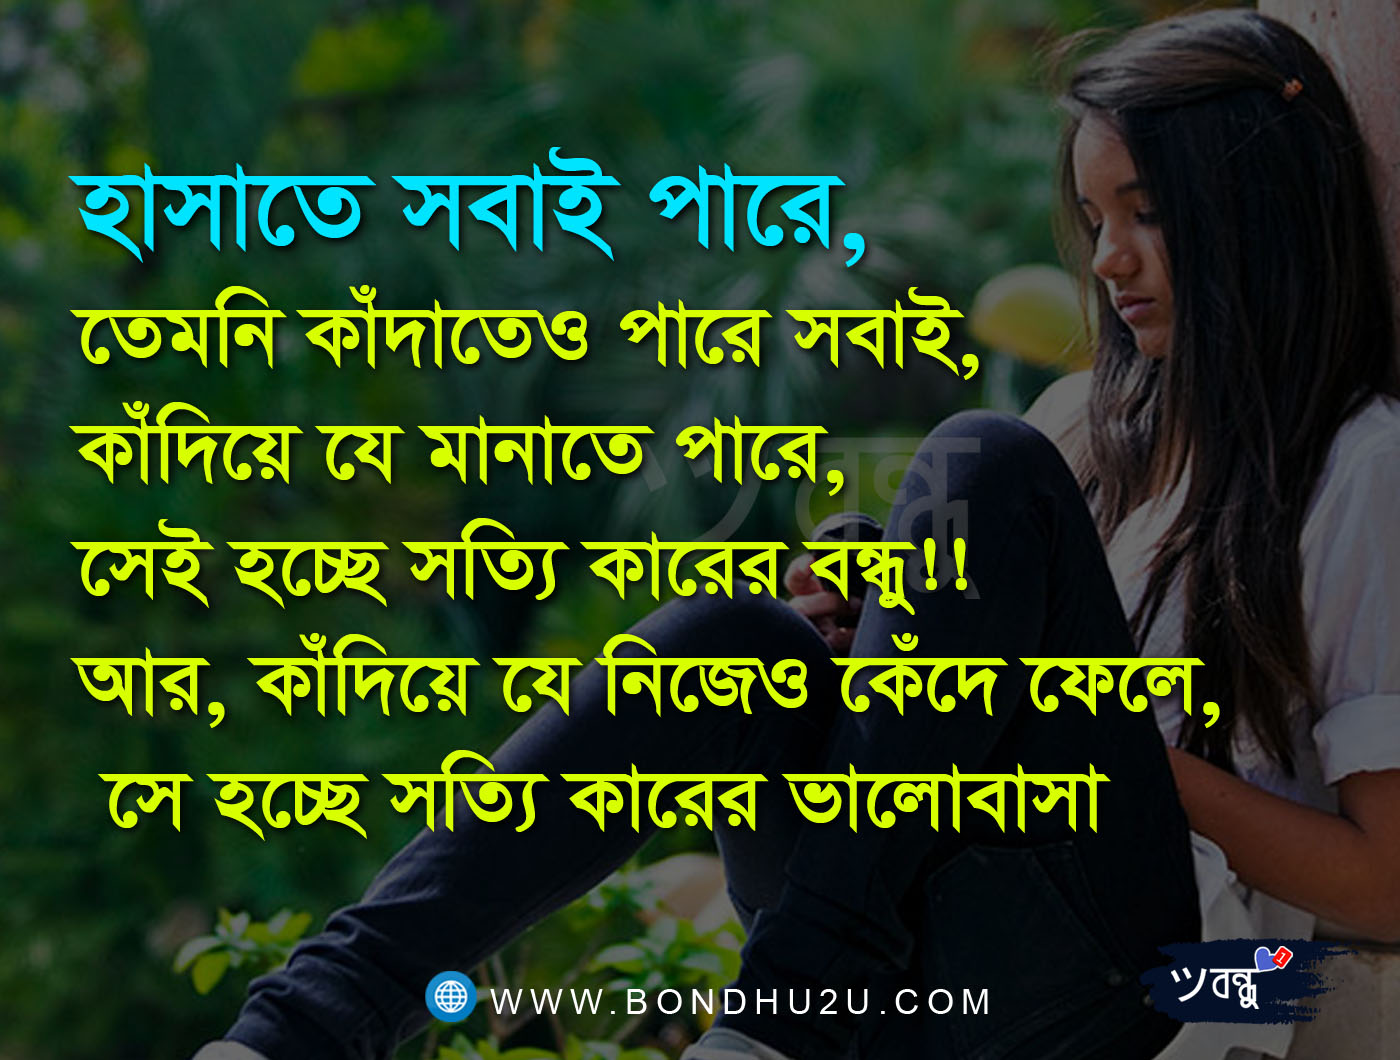 Best Bangla Love SMS - Hot Romantic Bangla Kobita Love Images SMS - bengali writing wallpaper ...